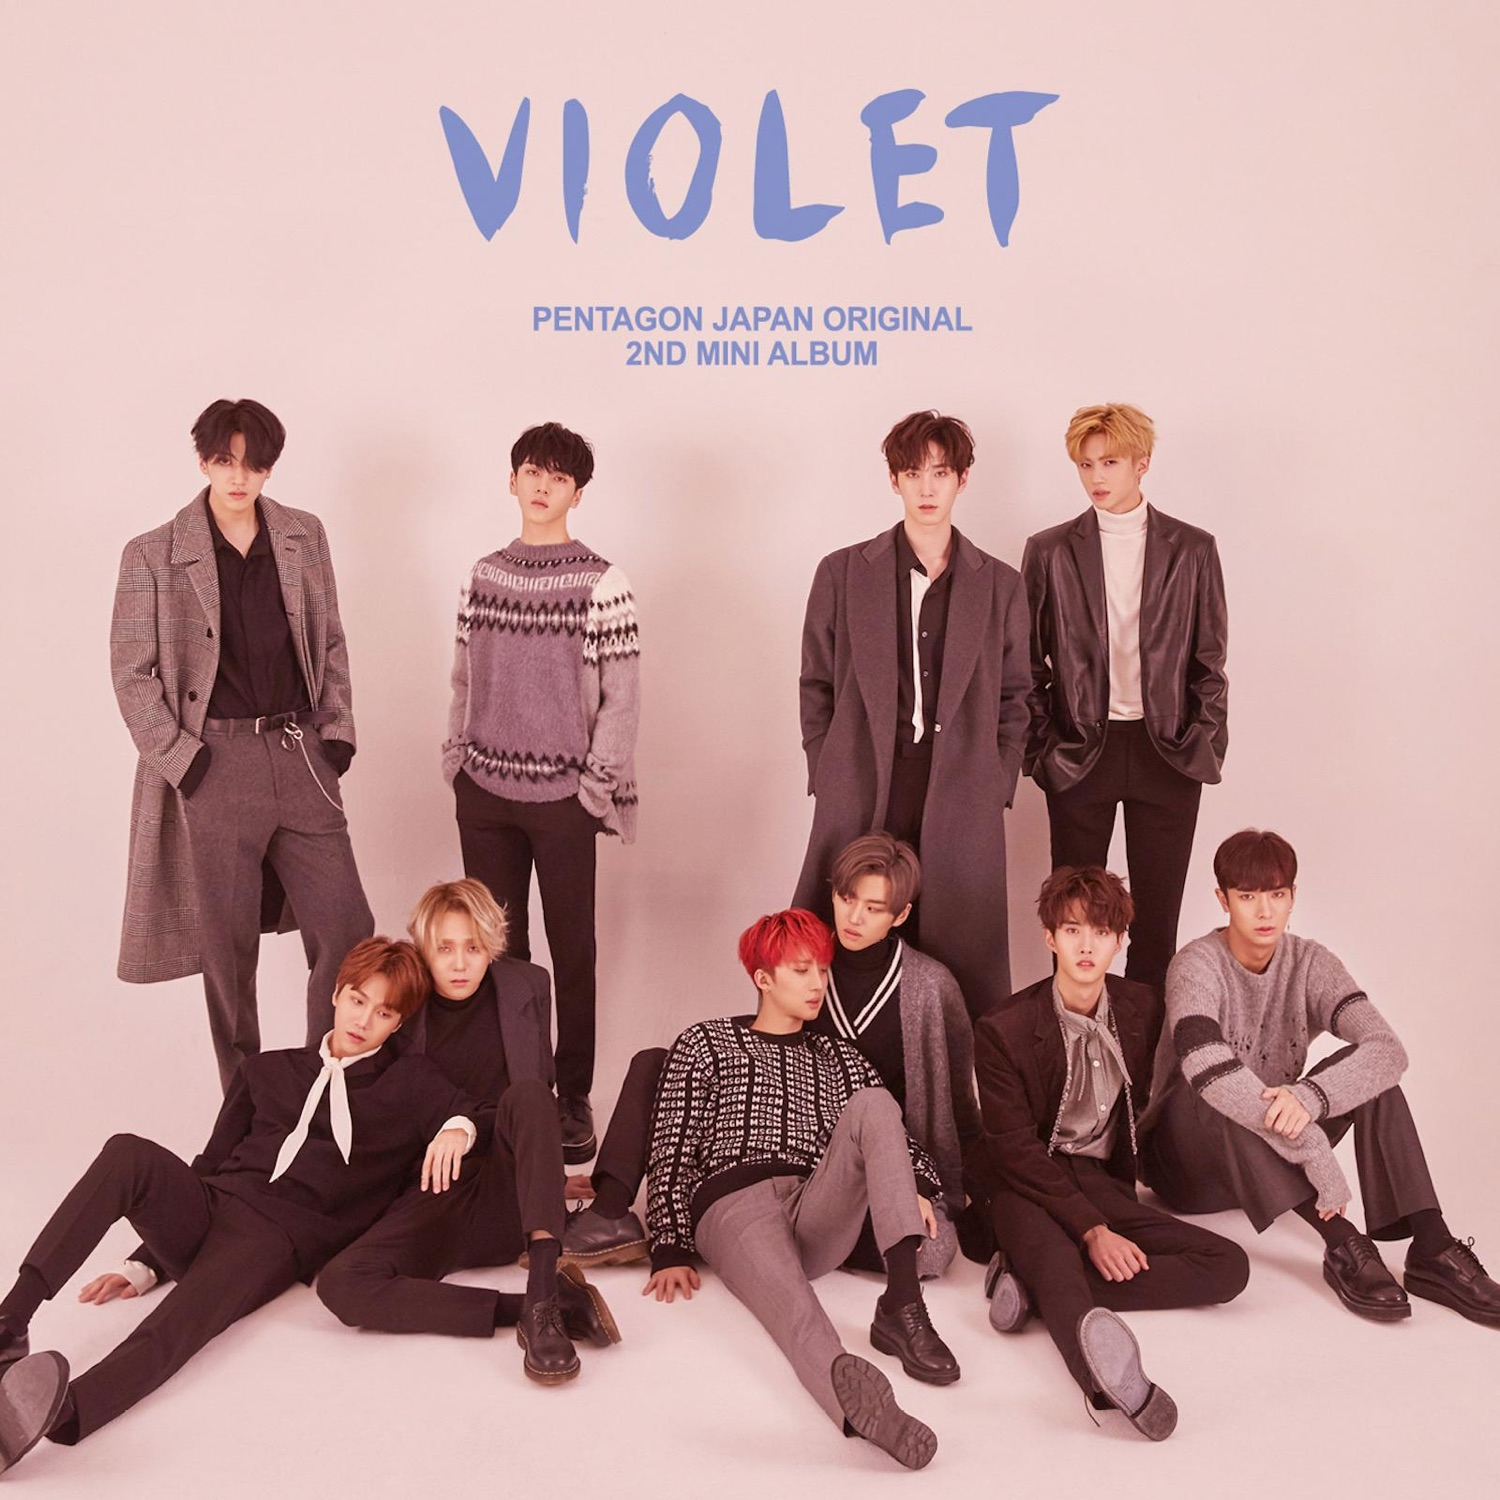 PENTAGON – PENTAGON JAPAN ORIGINAL 2ND MINI ALBUM 'VIOLET' – EP